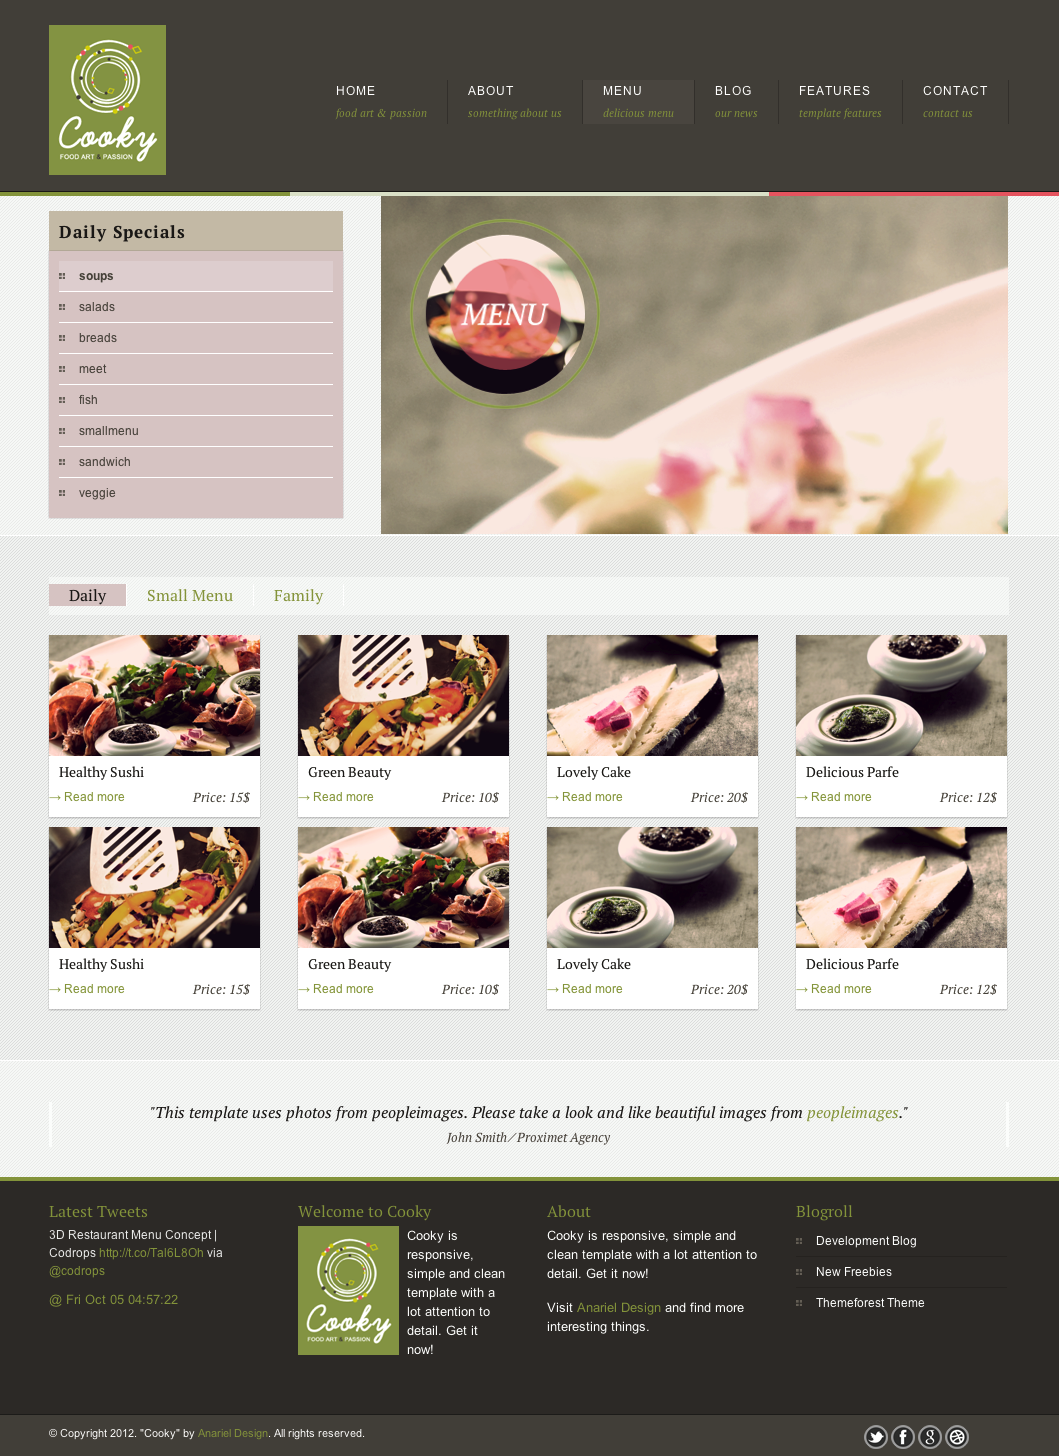 Cooky-Restaurant-Responsive-Html5-and-Css3-Template